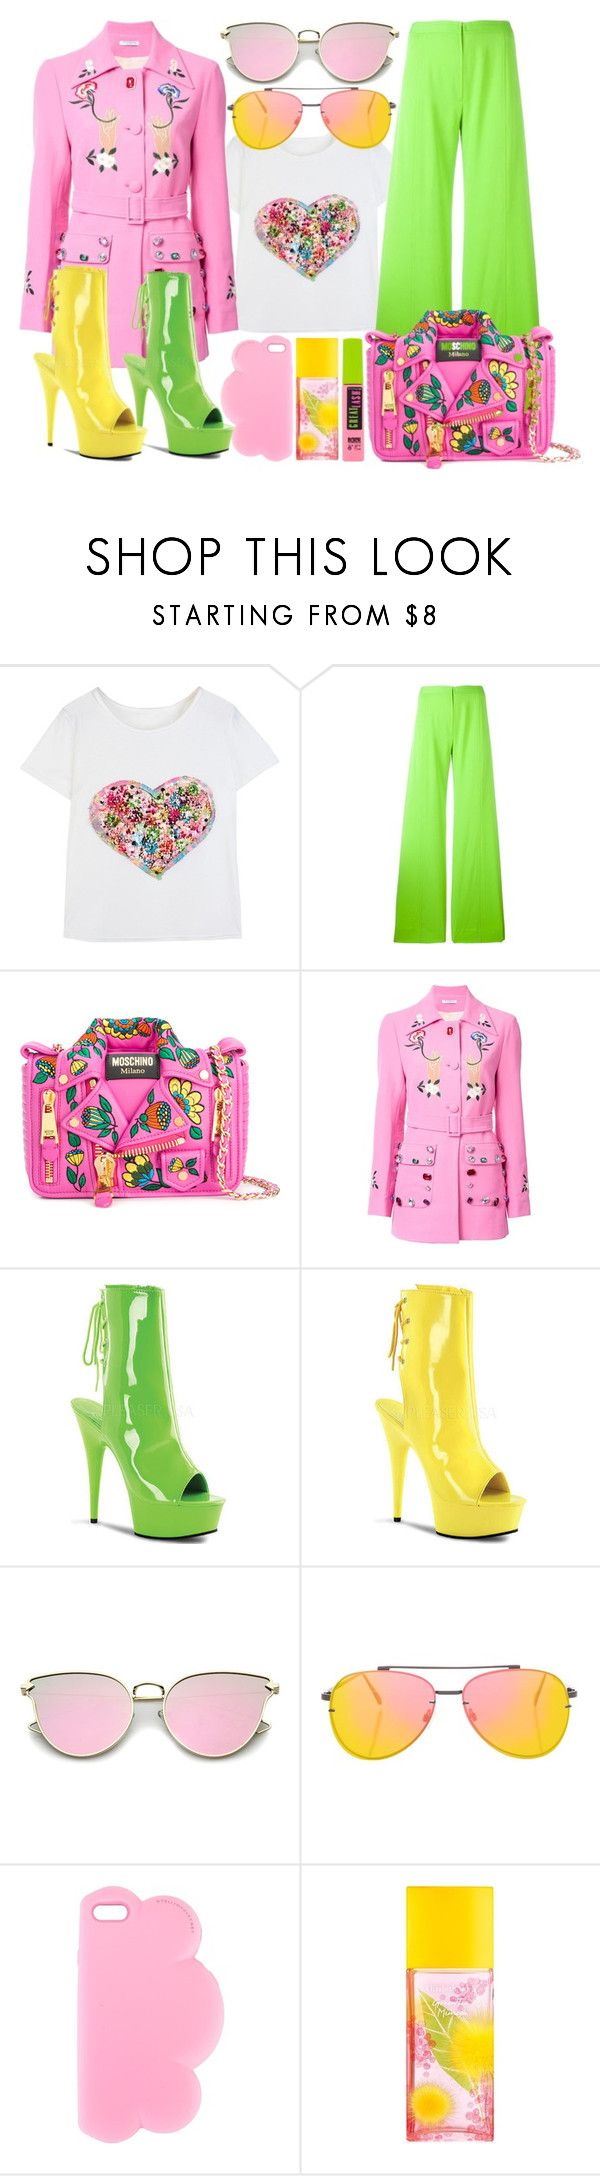 """""""Pink Chic"""" by sanya-styleup ❤ liked on Polyvore featuring Emanuel Ungaro, Moschino, VIVETTA, Pleaser, Topshop, STELLA McCARTNEY, Elizabeth Arden and Maybelline"""